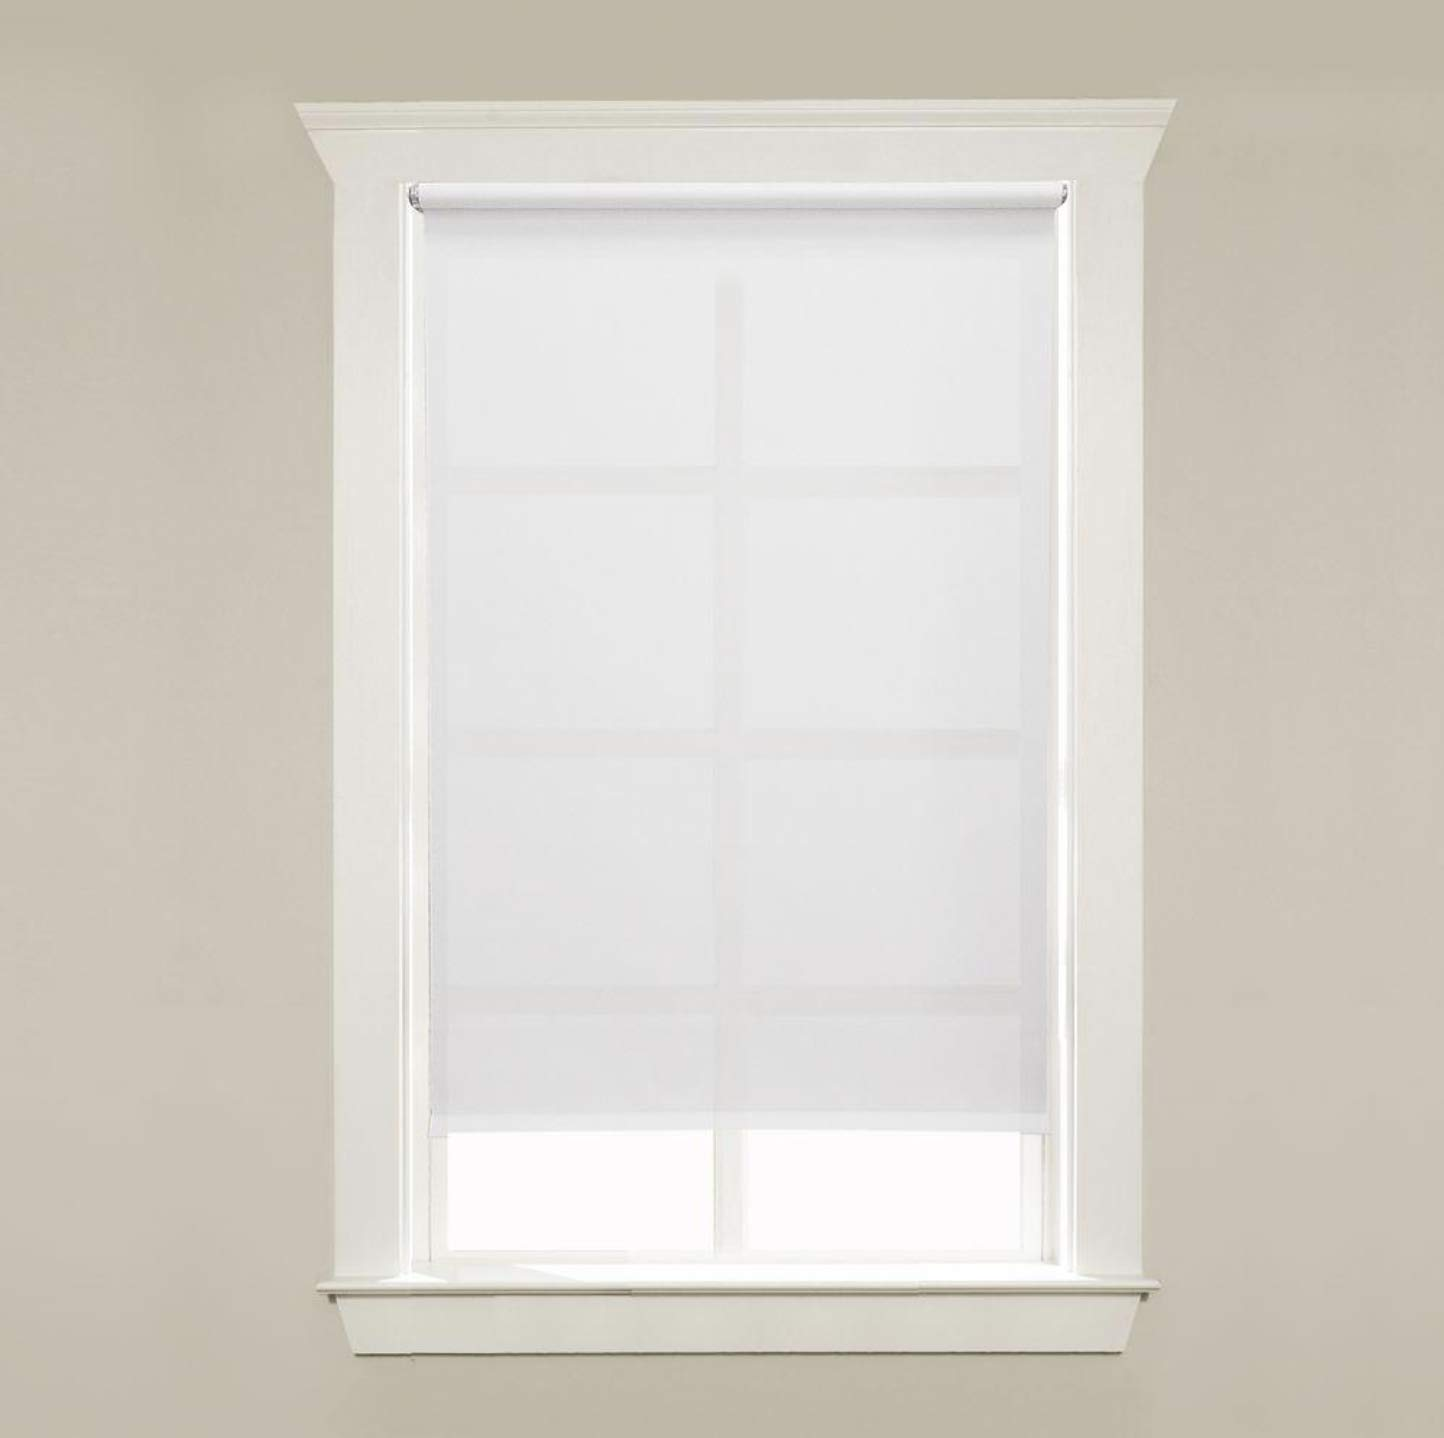 Hometown BudgetBlinds White Cordless Light Filtering 5 mil Vinyl Roller Shade Curtain for Window or Door (24 W 72 L)